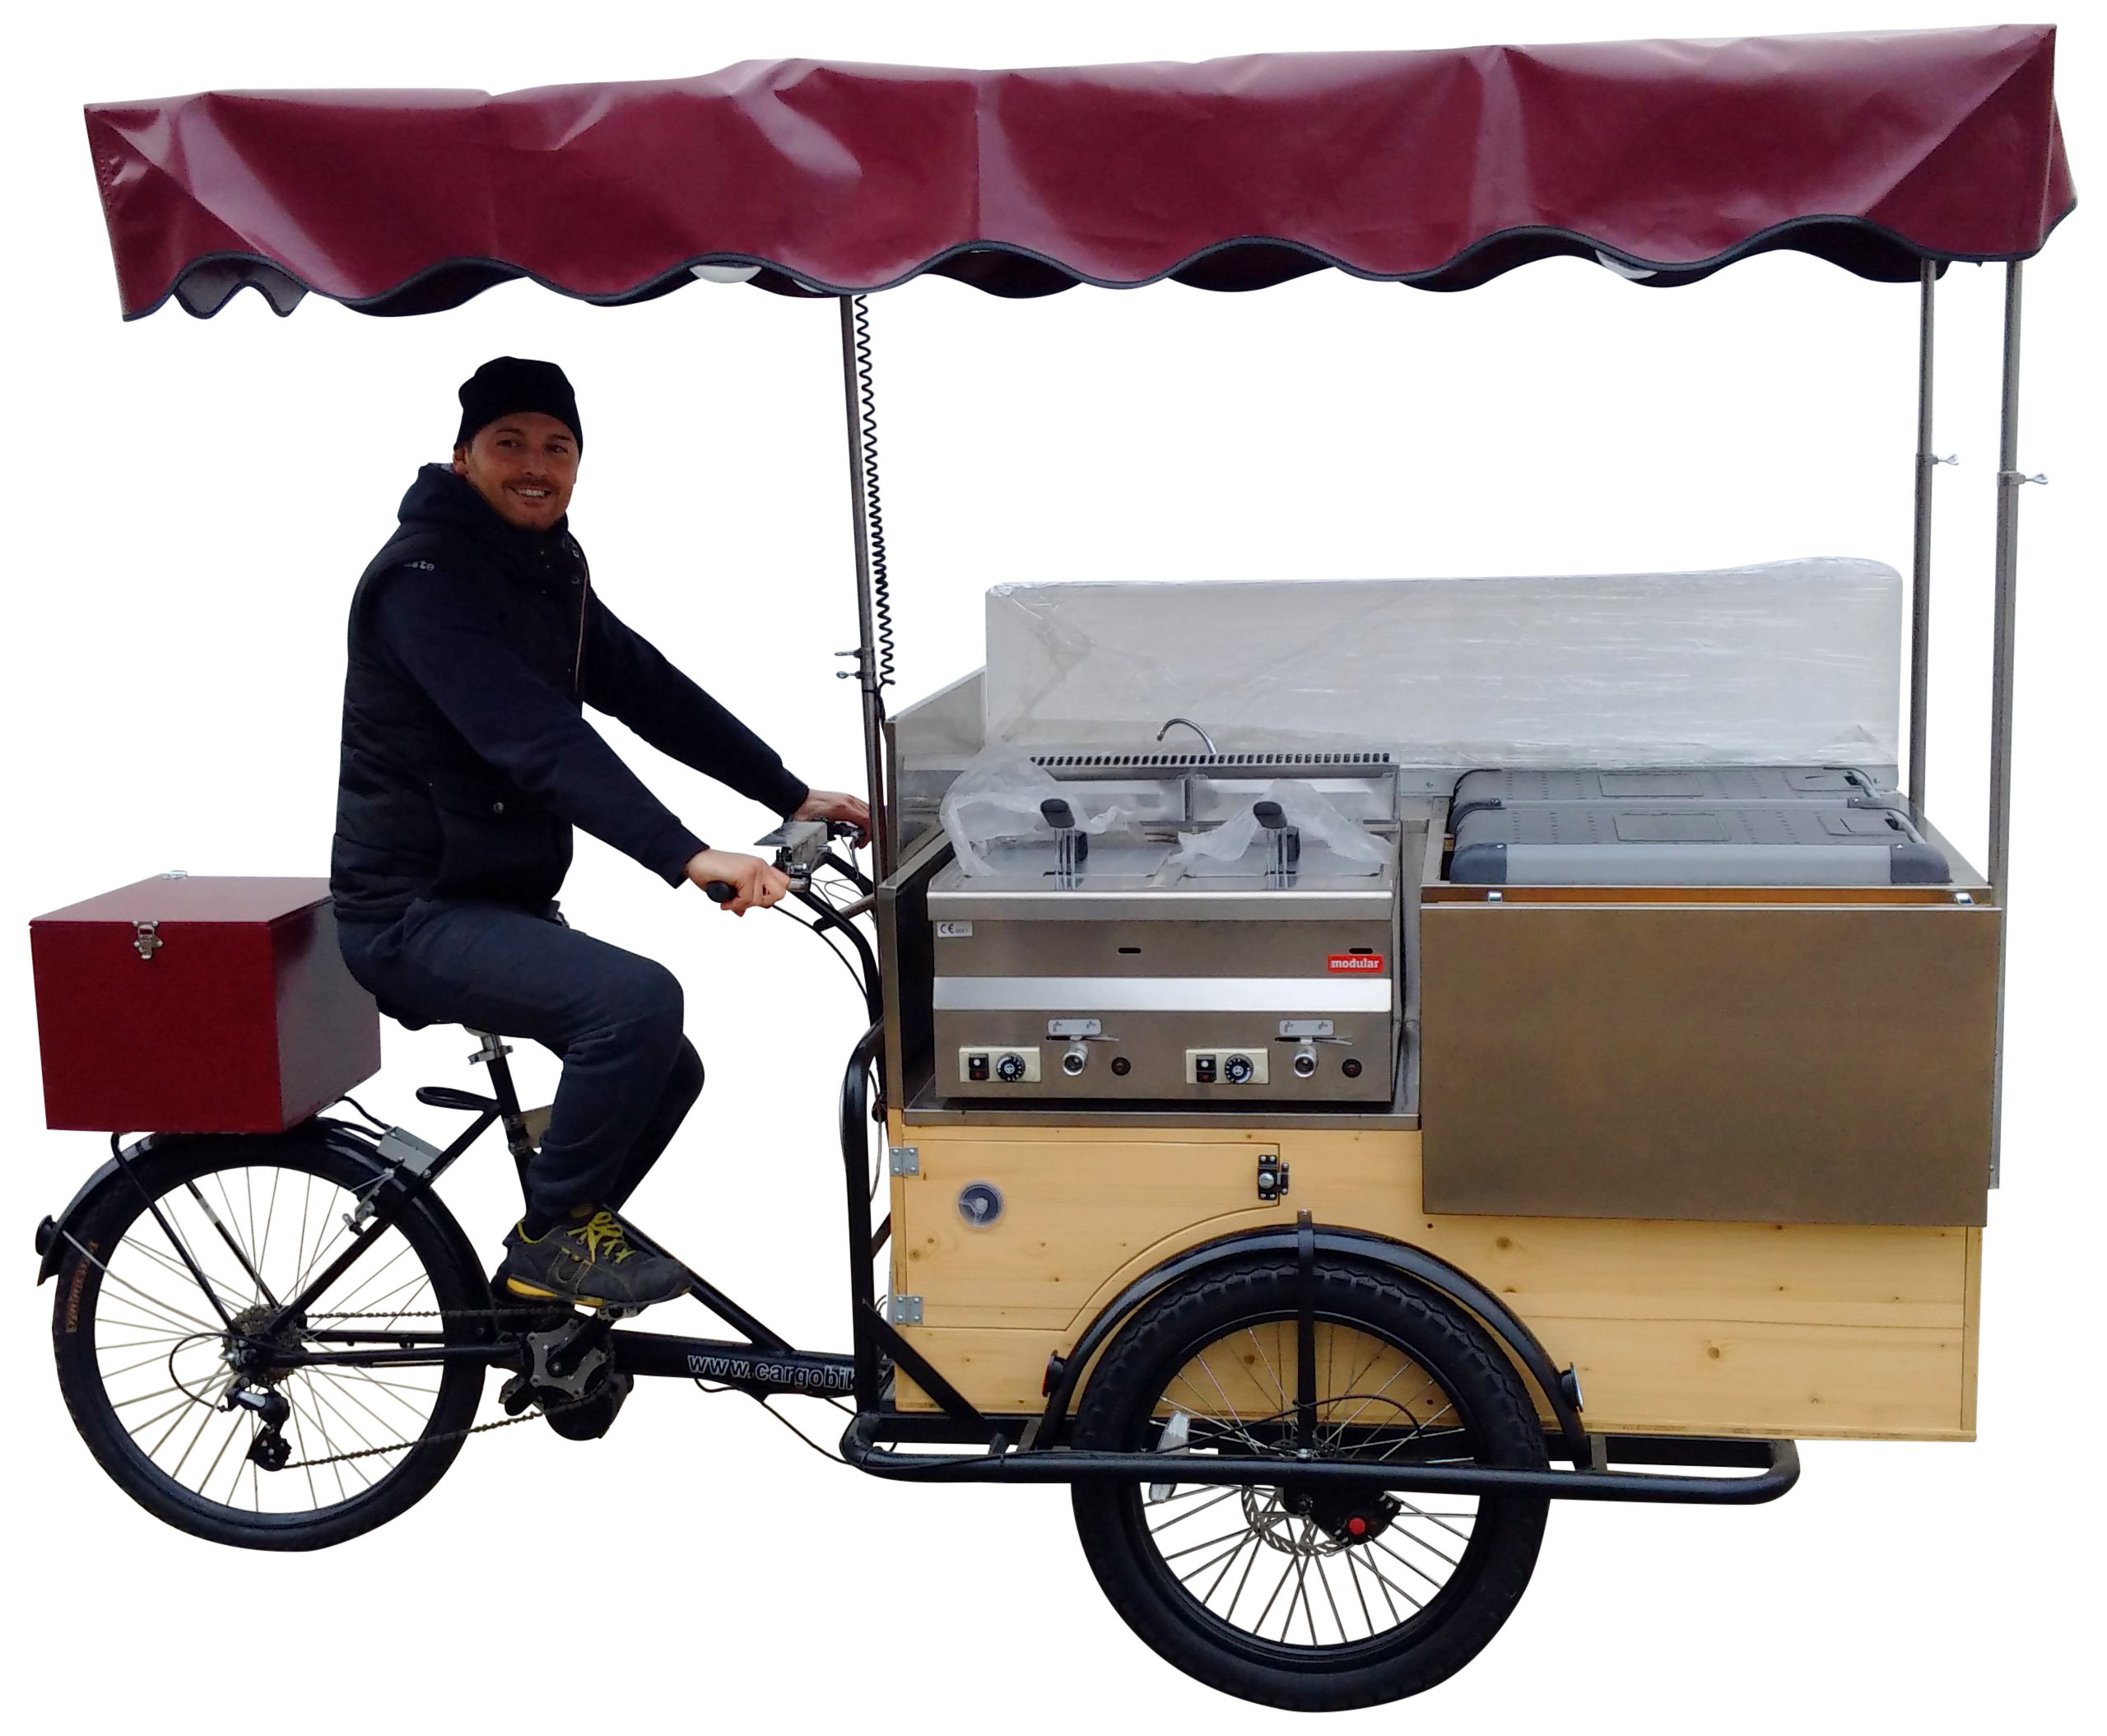 STREET_FOOD_BIKE_QUADRA_FRIGGITRICE_IN_LEGNO_TRICICLO_CARGO_BIKE_31